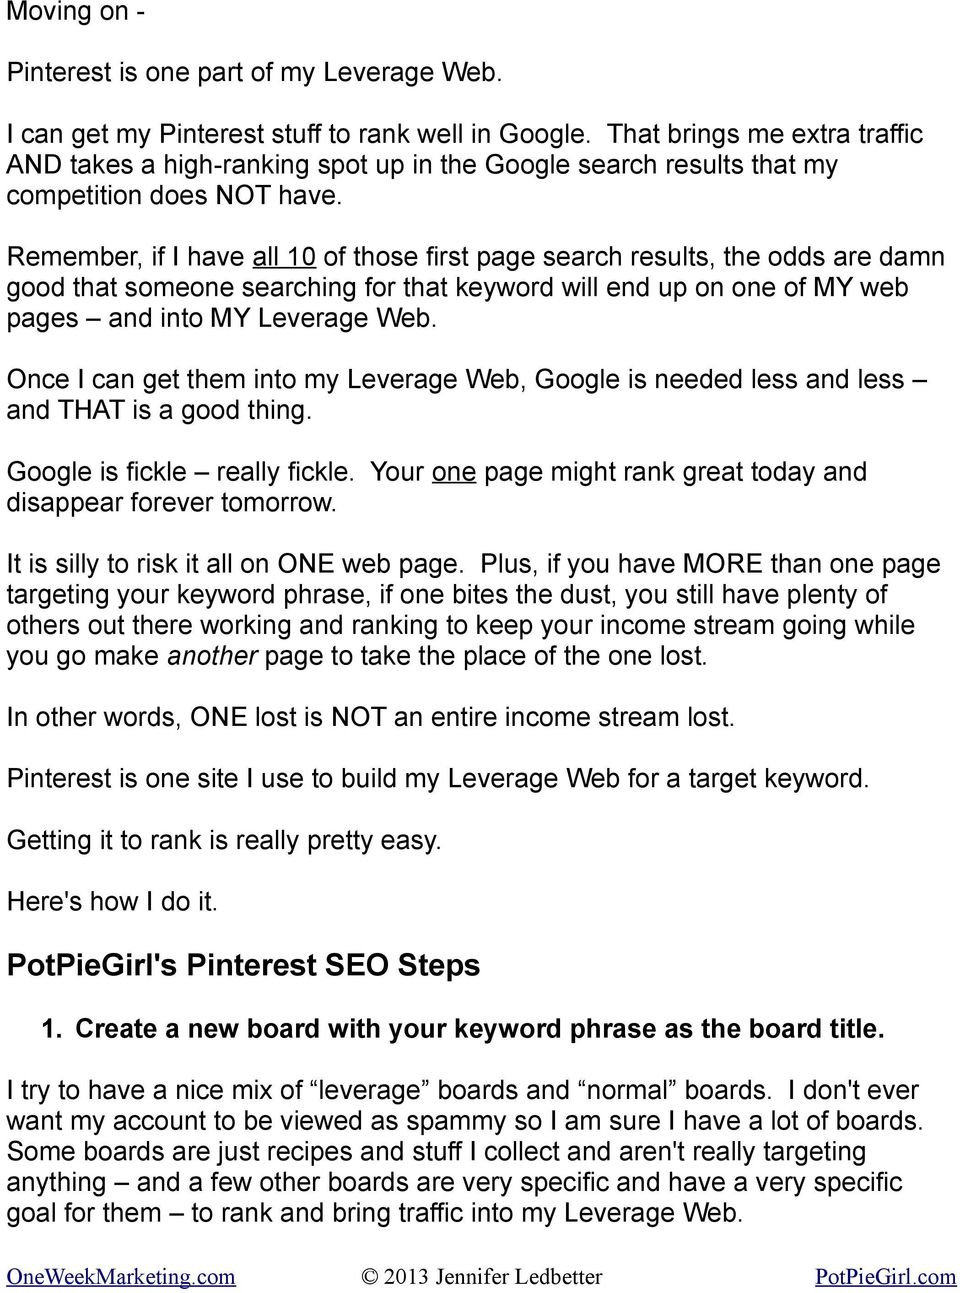 Remember, if I have all 10 of those first page search results, the odds are damn good that someone searching for that keyword will end up on one of MY web pages and into MY Leverage Web.